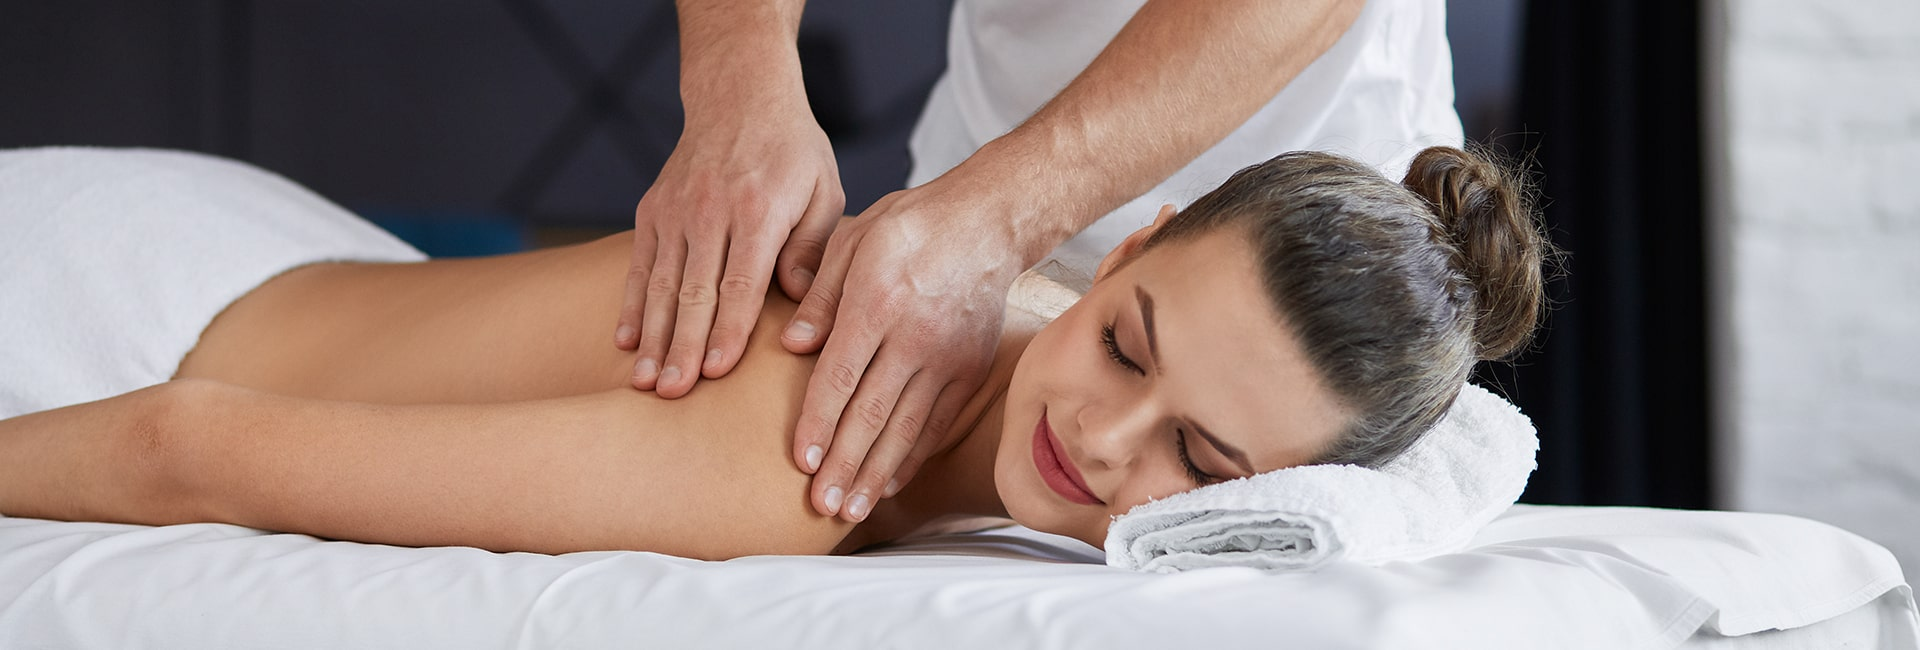 Best way to give a back massage